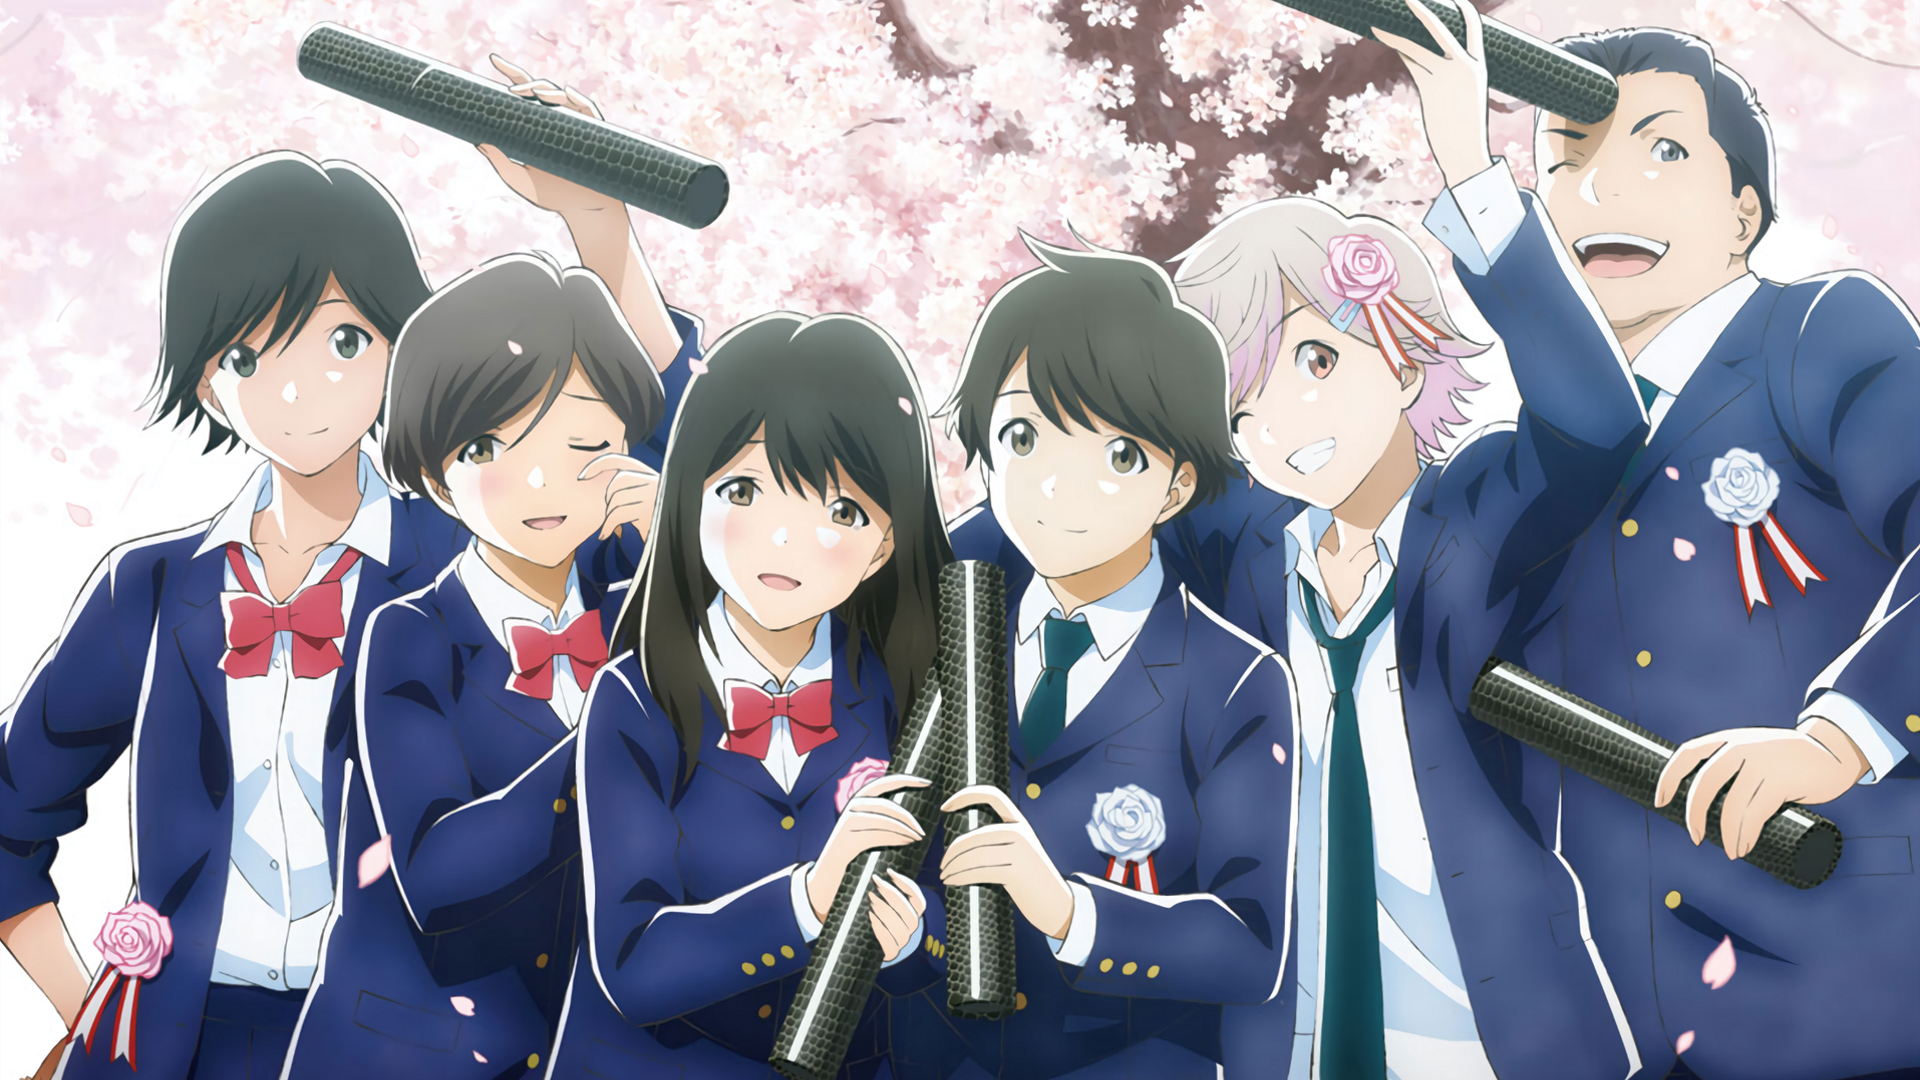 A look at 10 NonSequel Anime from Spring 2017 Animasi